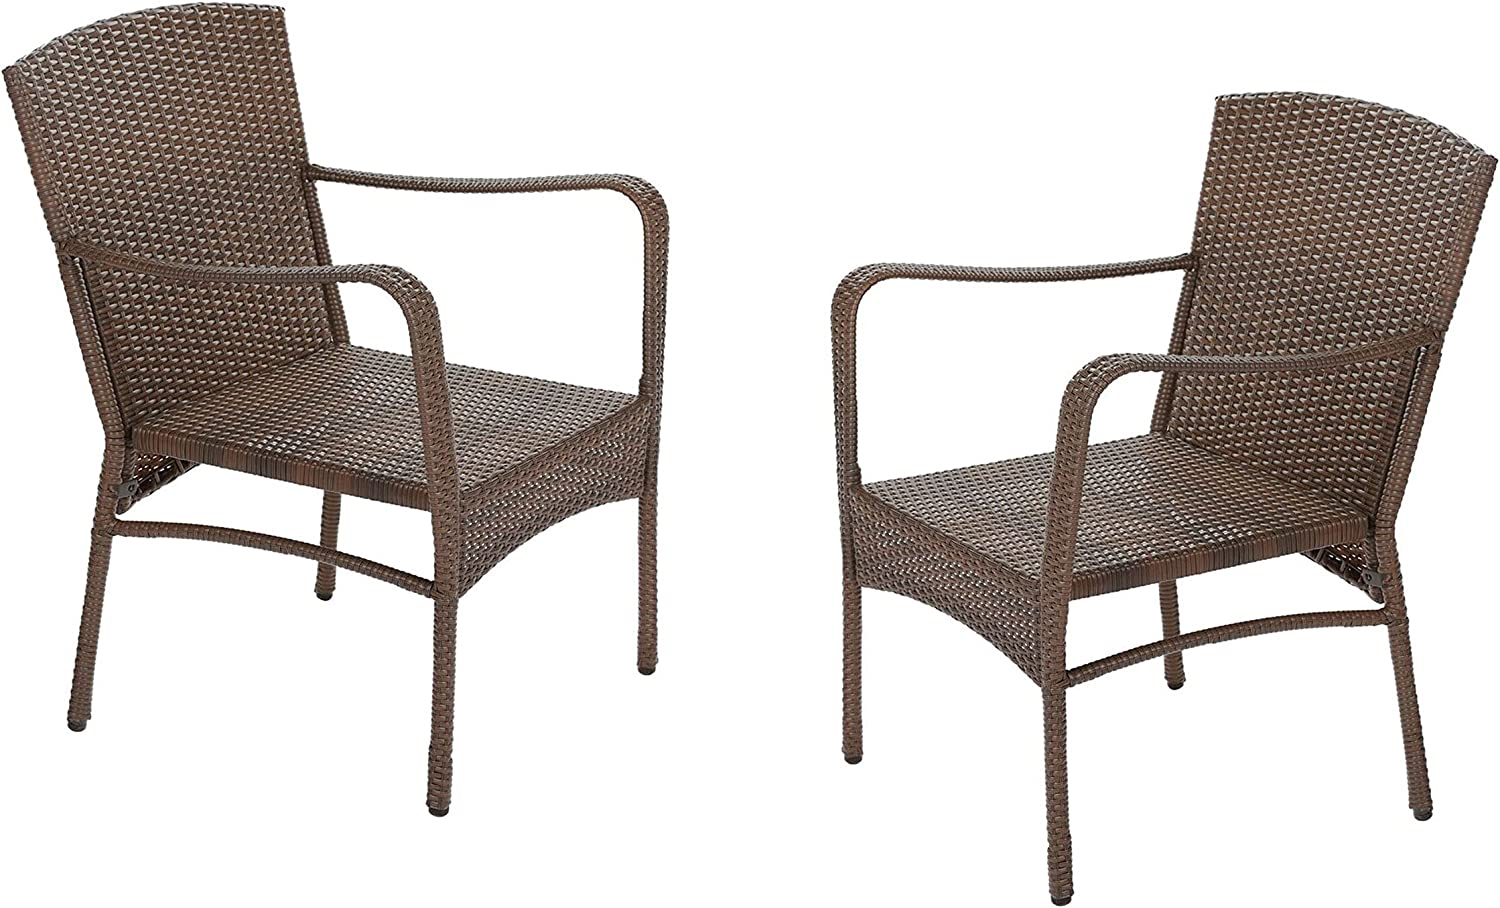 W Unlimited Leisure Collection Outdoor Garden Patio Furniture 2-PC Set Chair, Dark Brown